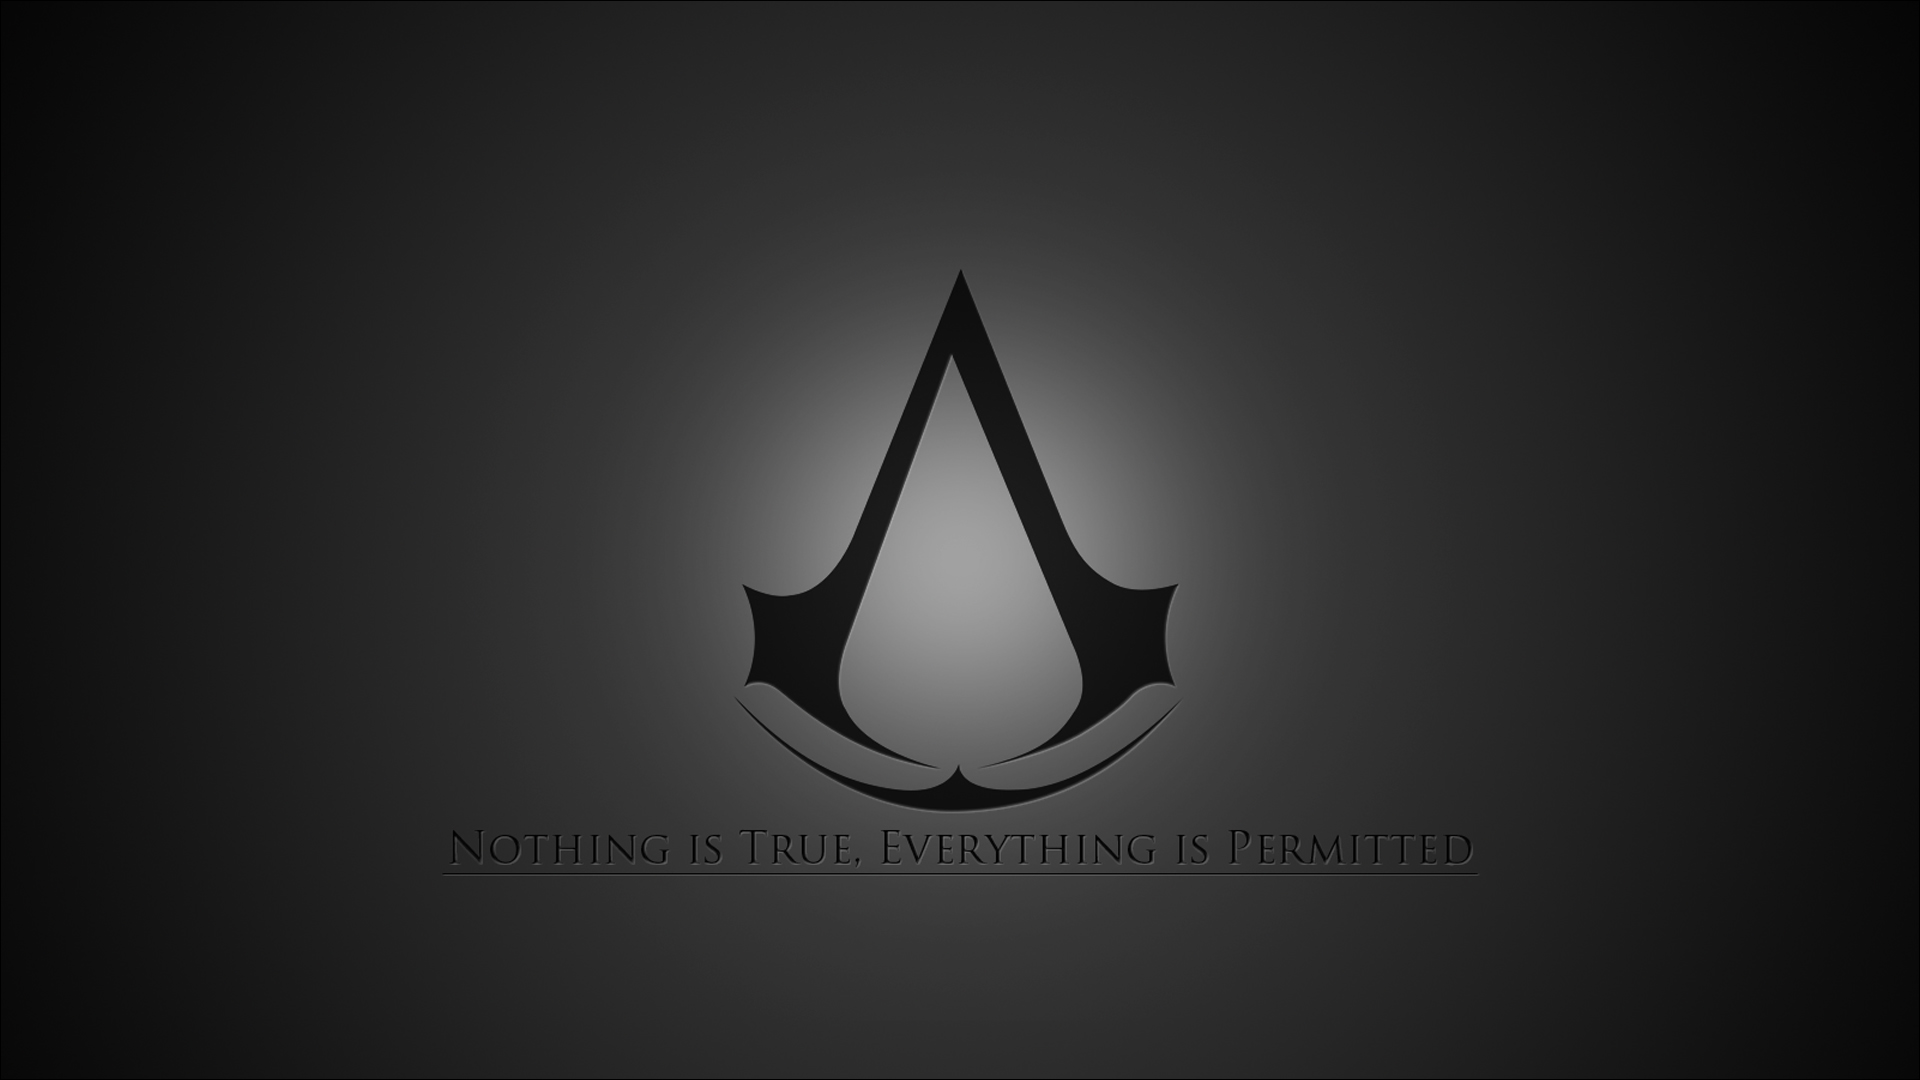 Logo Assassins Creed Wallpapers | PixelsTalk Net